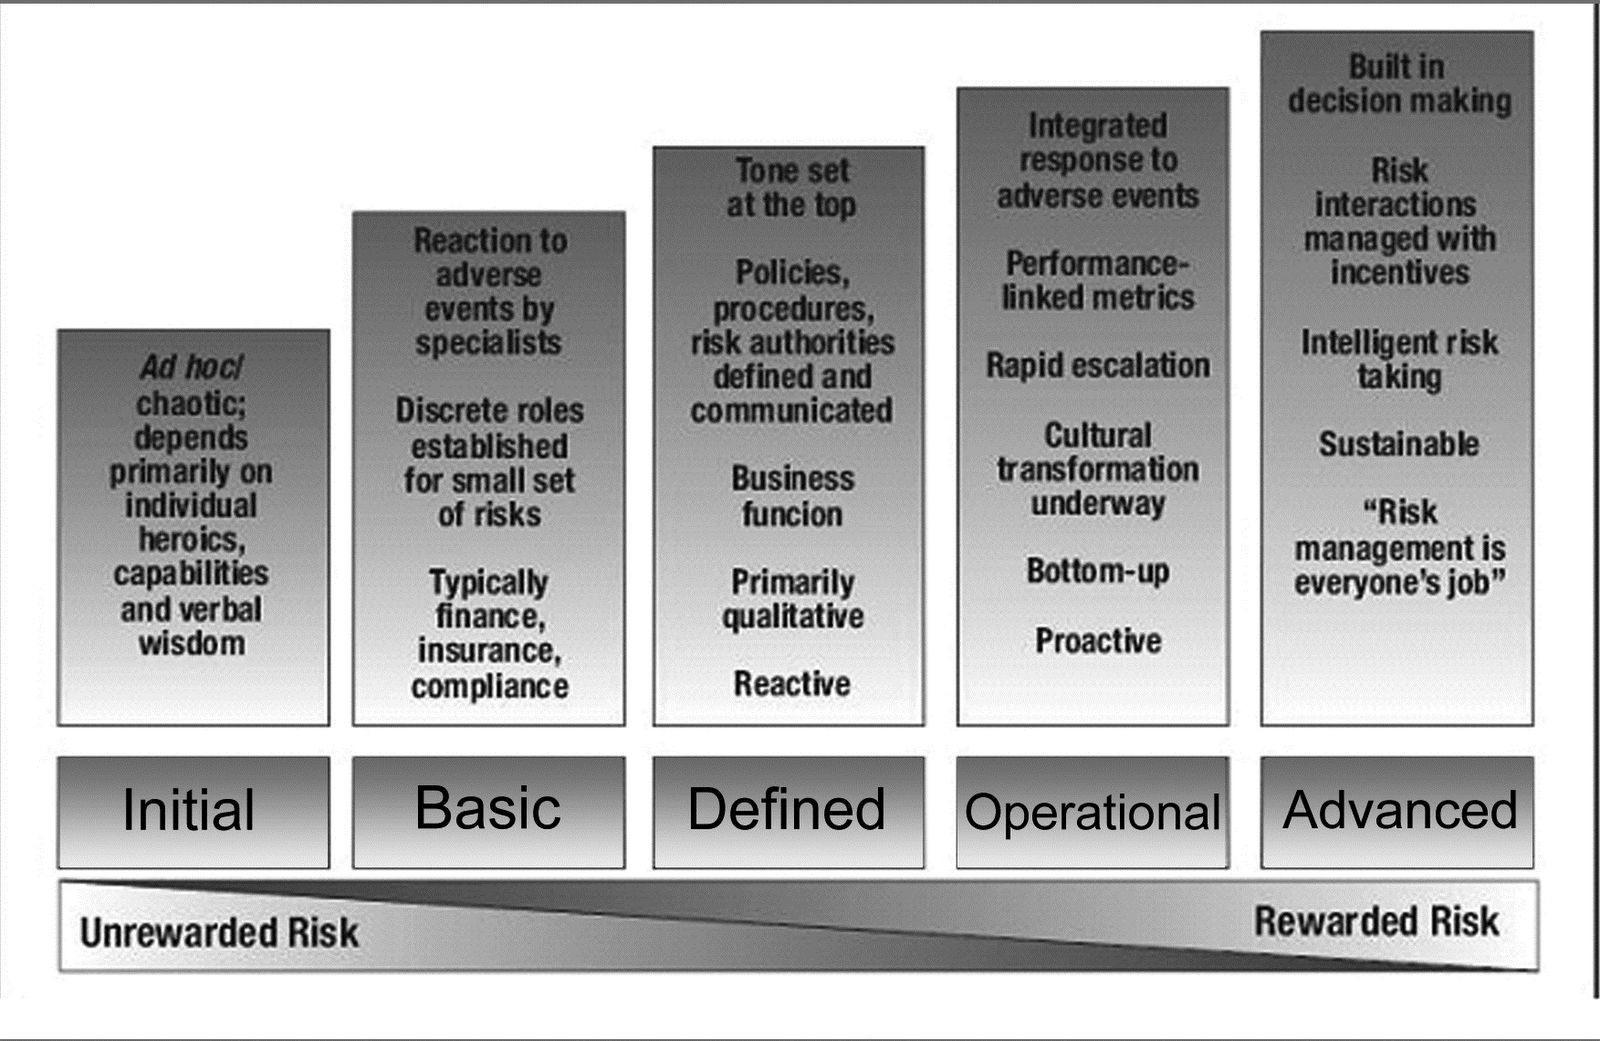 operational risk management modeling Modeling has become a favored tool among banks, capital markets firms and financial services leaders, who can access a variety of advanced mathematical, statistical or numerical models to assess and manage risk liquidity, balance sheet and income statement scenarios all can be projected using.